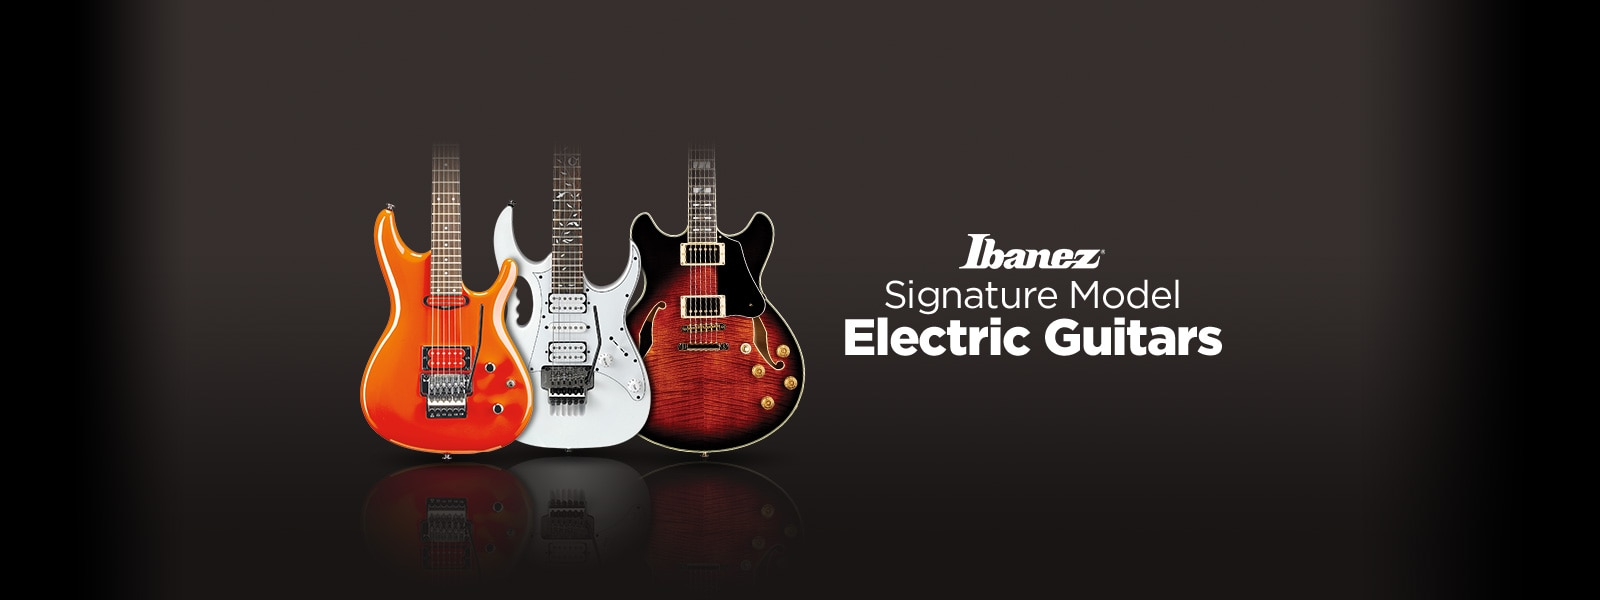 Ibanez Signature Model Electric Guitars